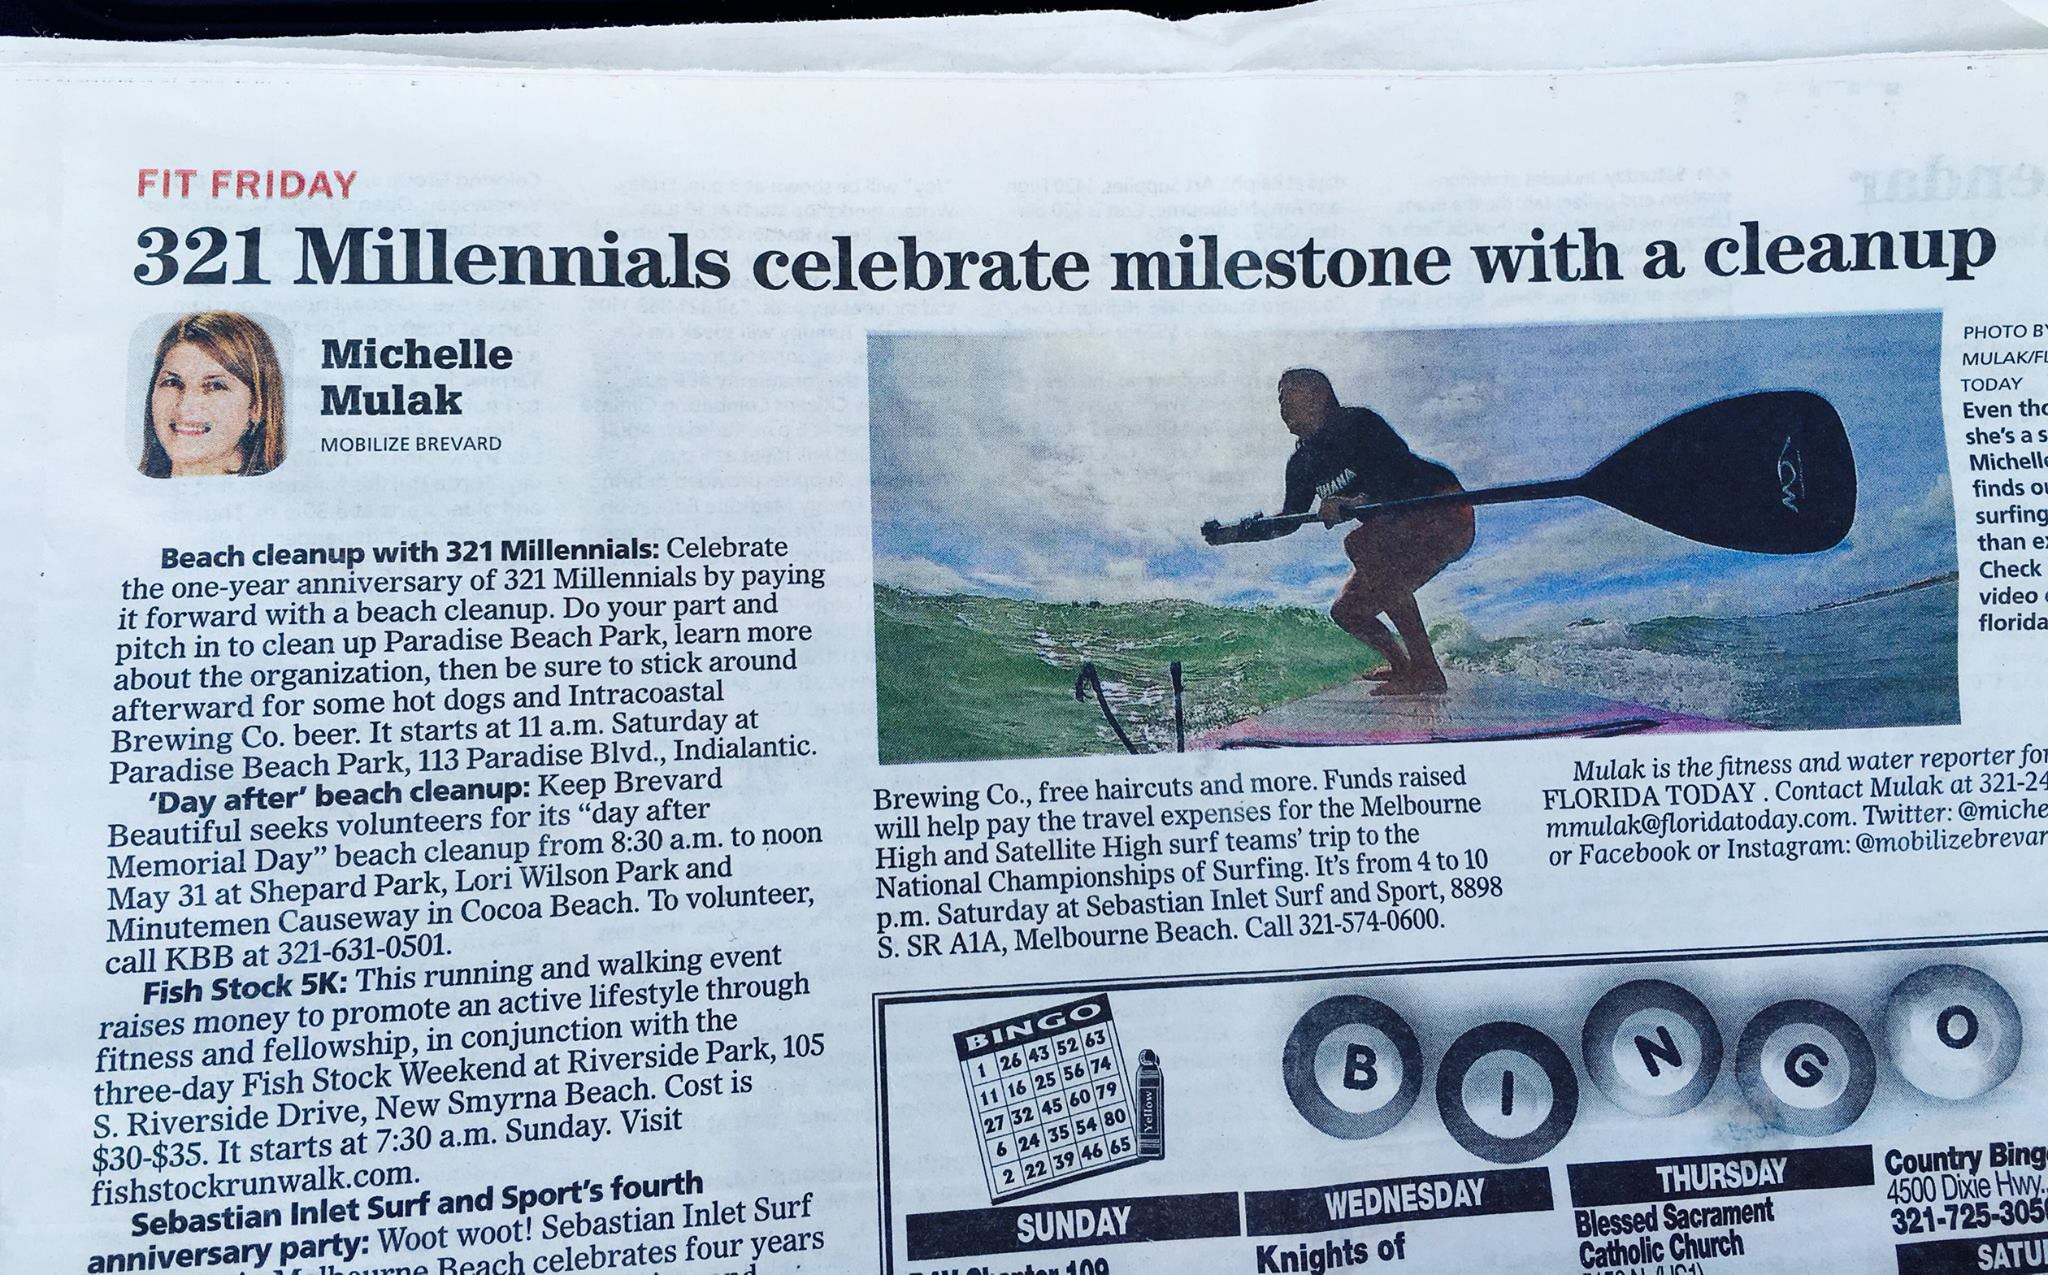 Florida Today covers 321 Millennials